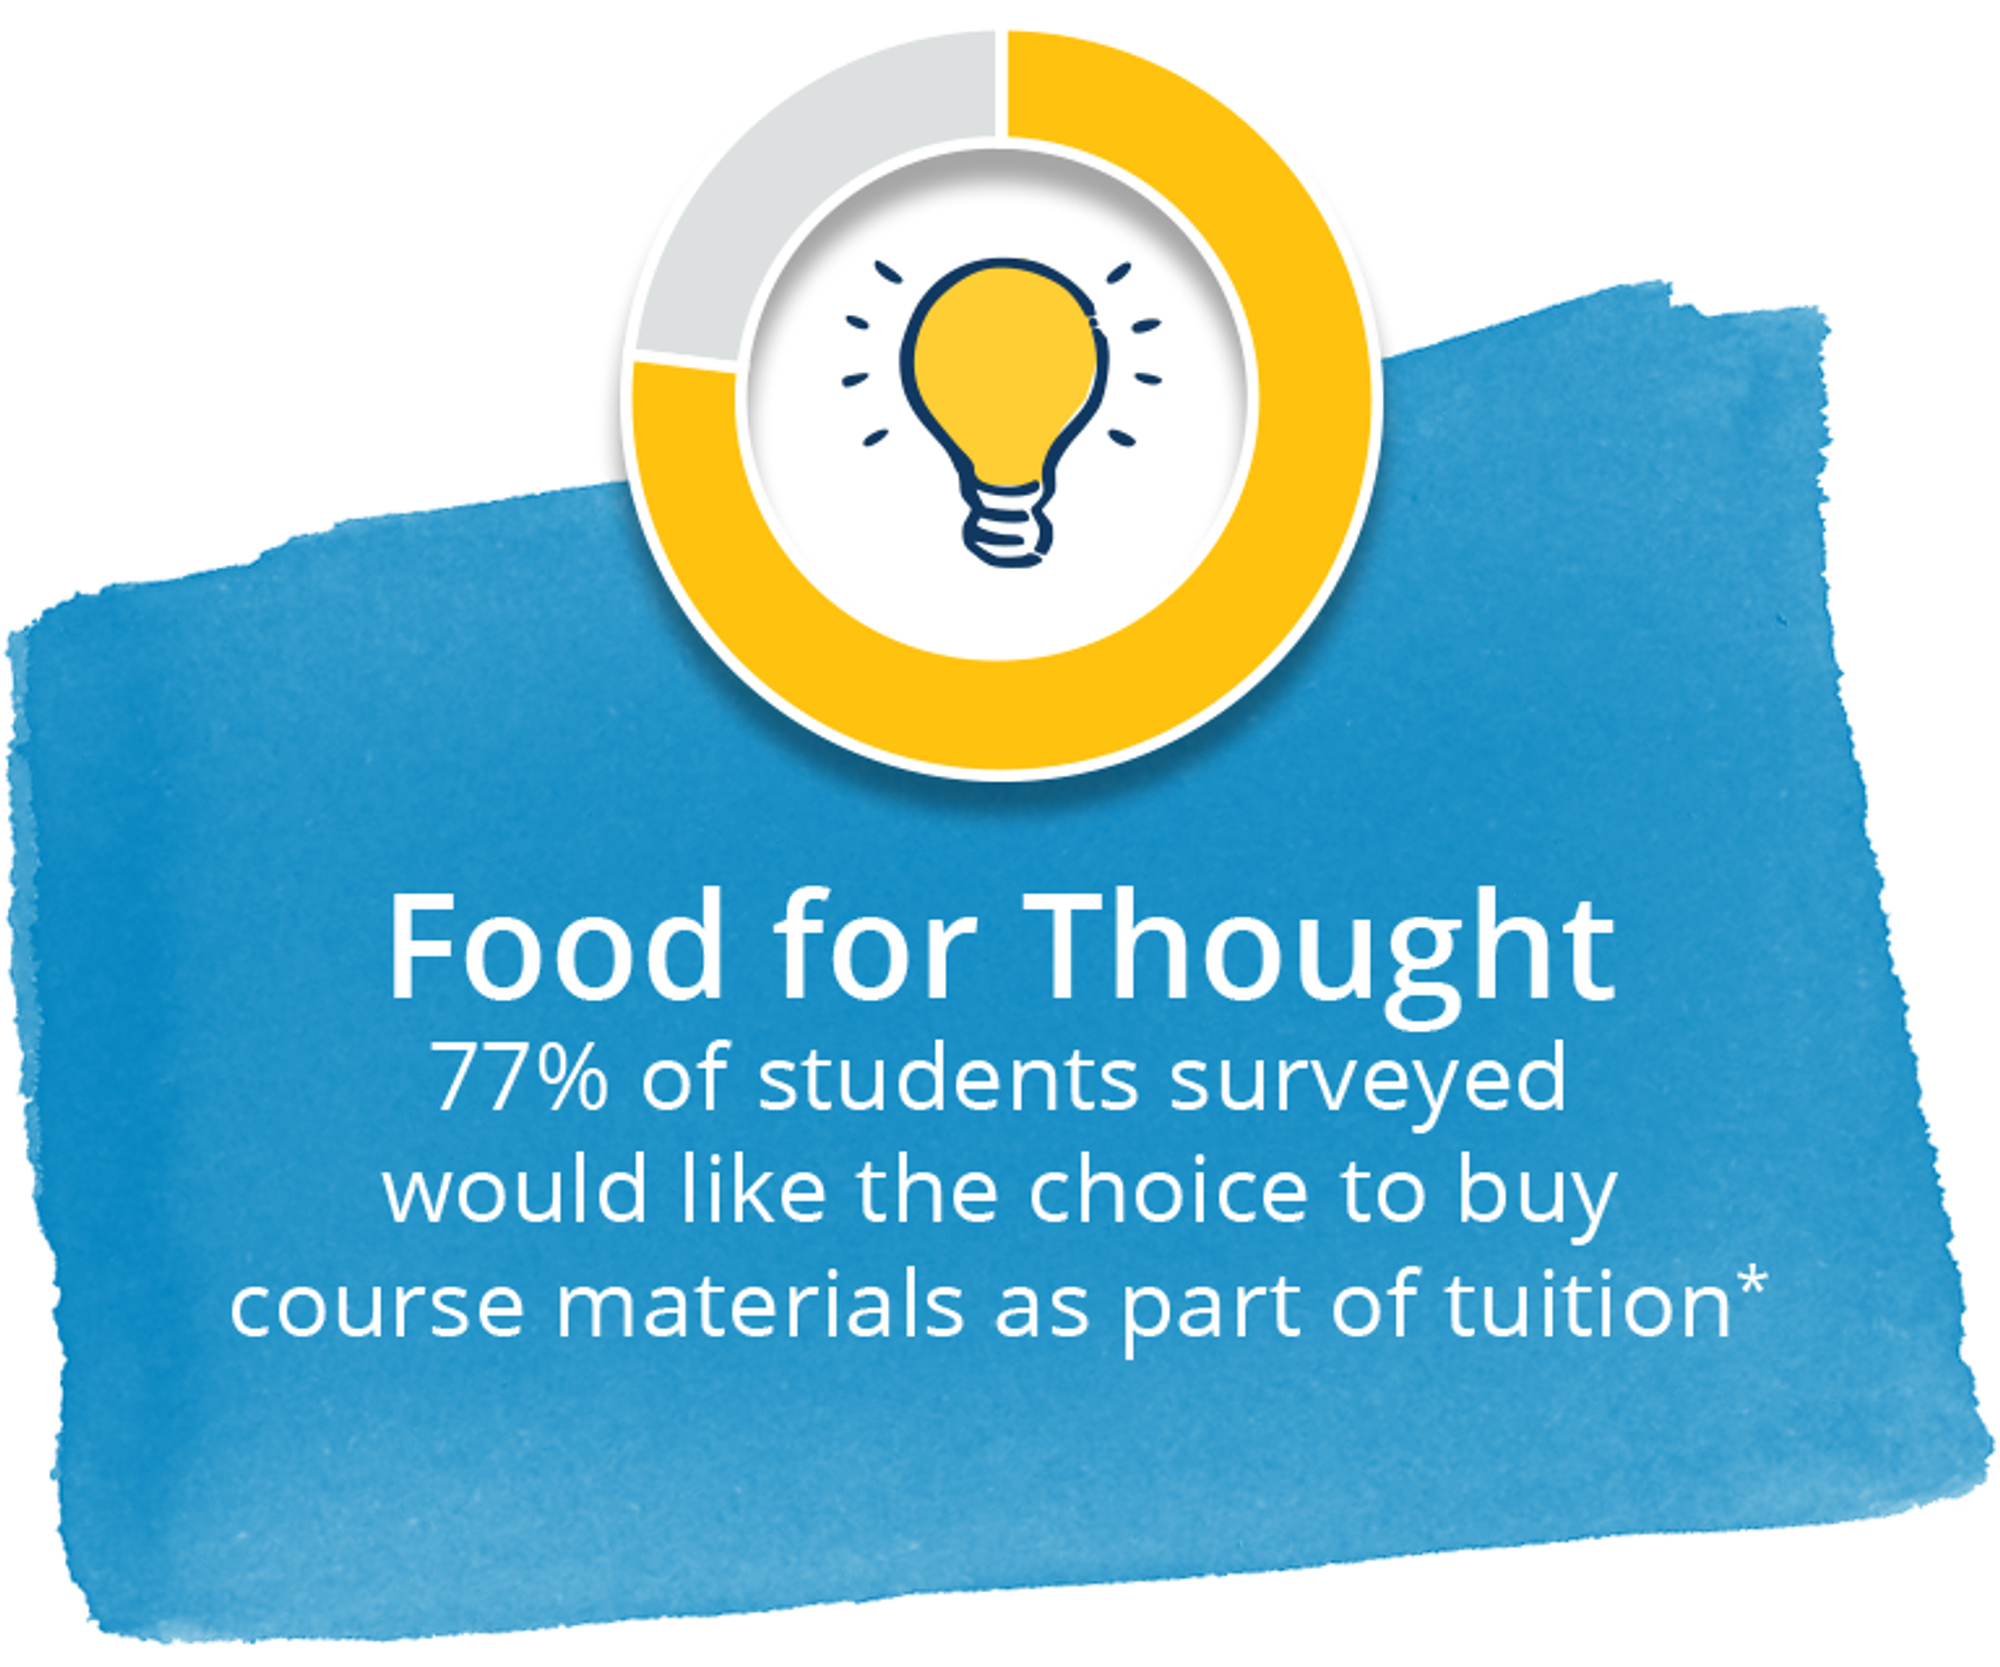 Food for thought. 77% of students surveyed would like the choice to buy course materials as part of tuition.*